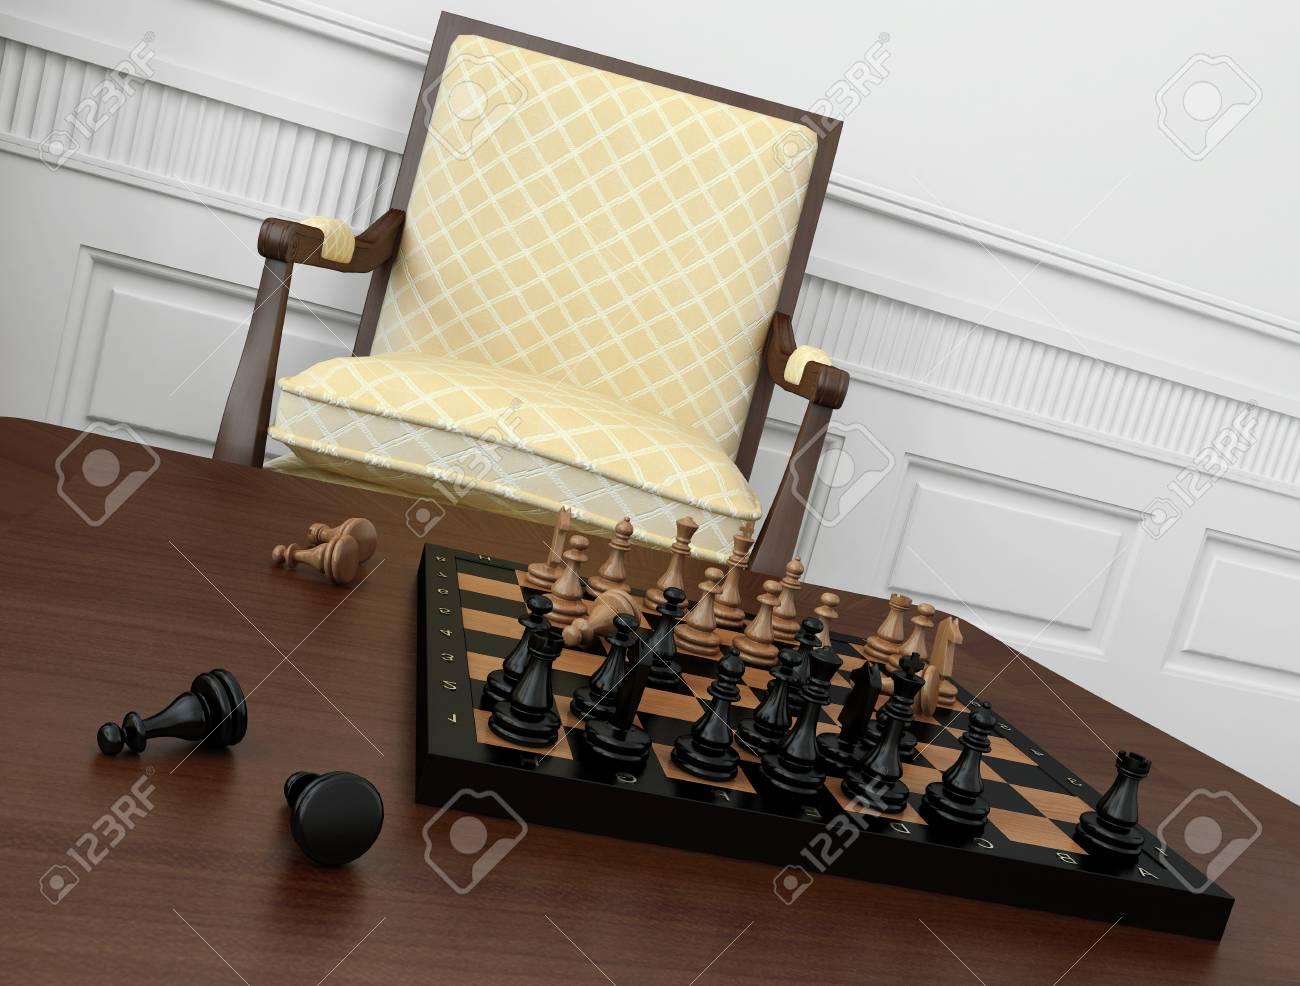 Astounding Close Up Of Vintage Chess Game On Coffee Table With Chair In Gmtry Best Dining Table And Chair Ideas Images Gmtryco